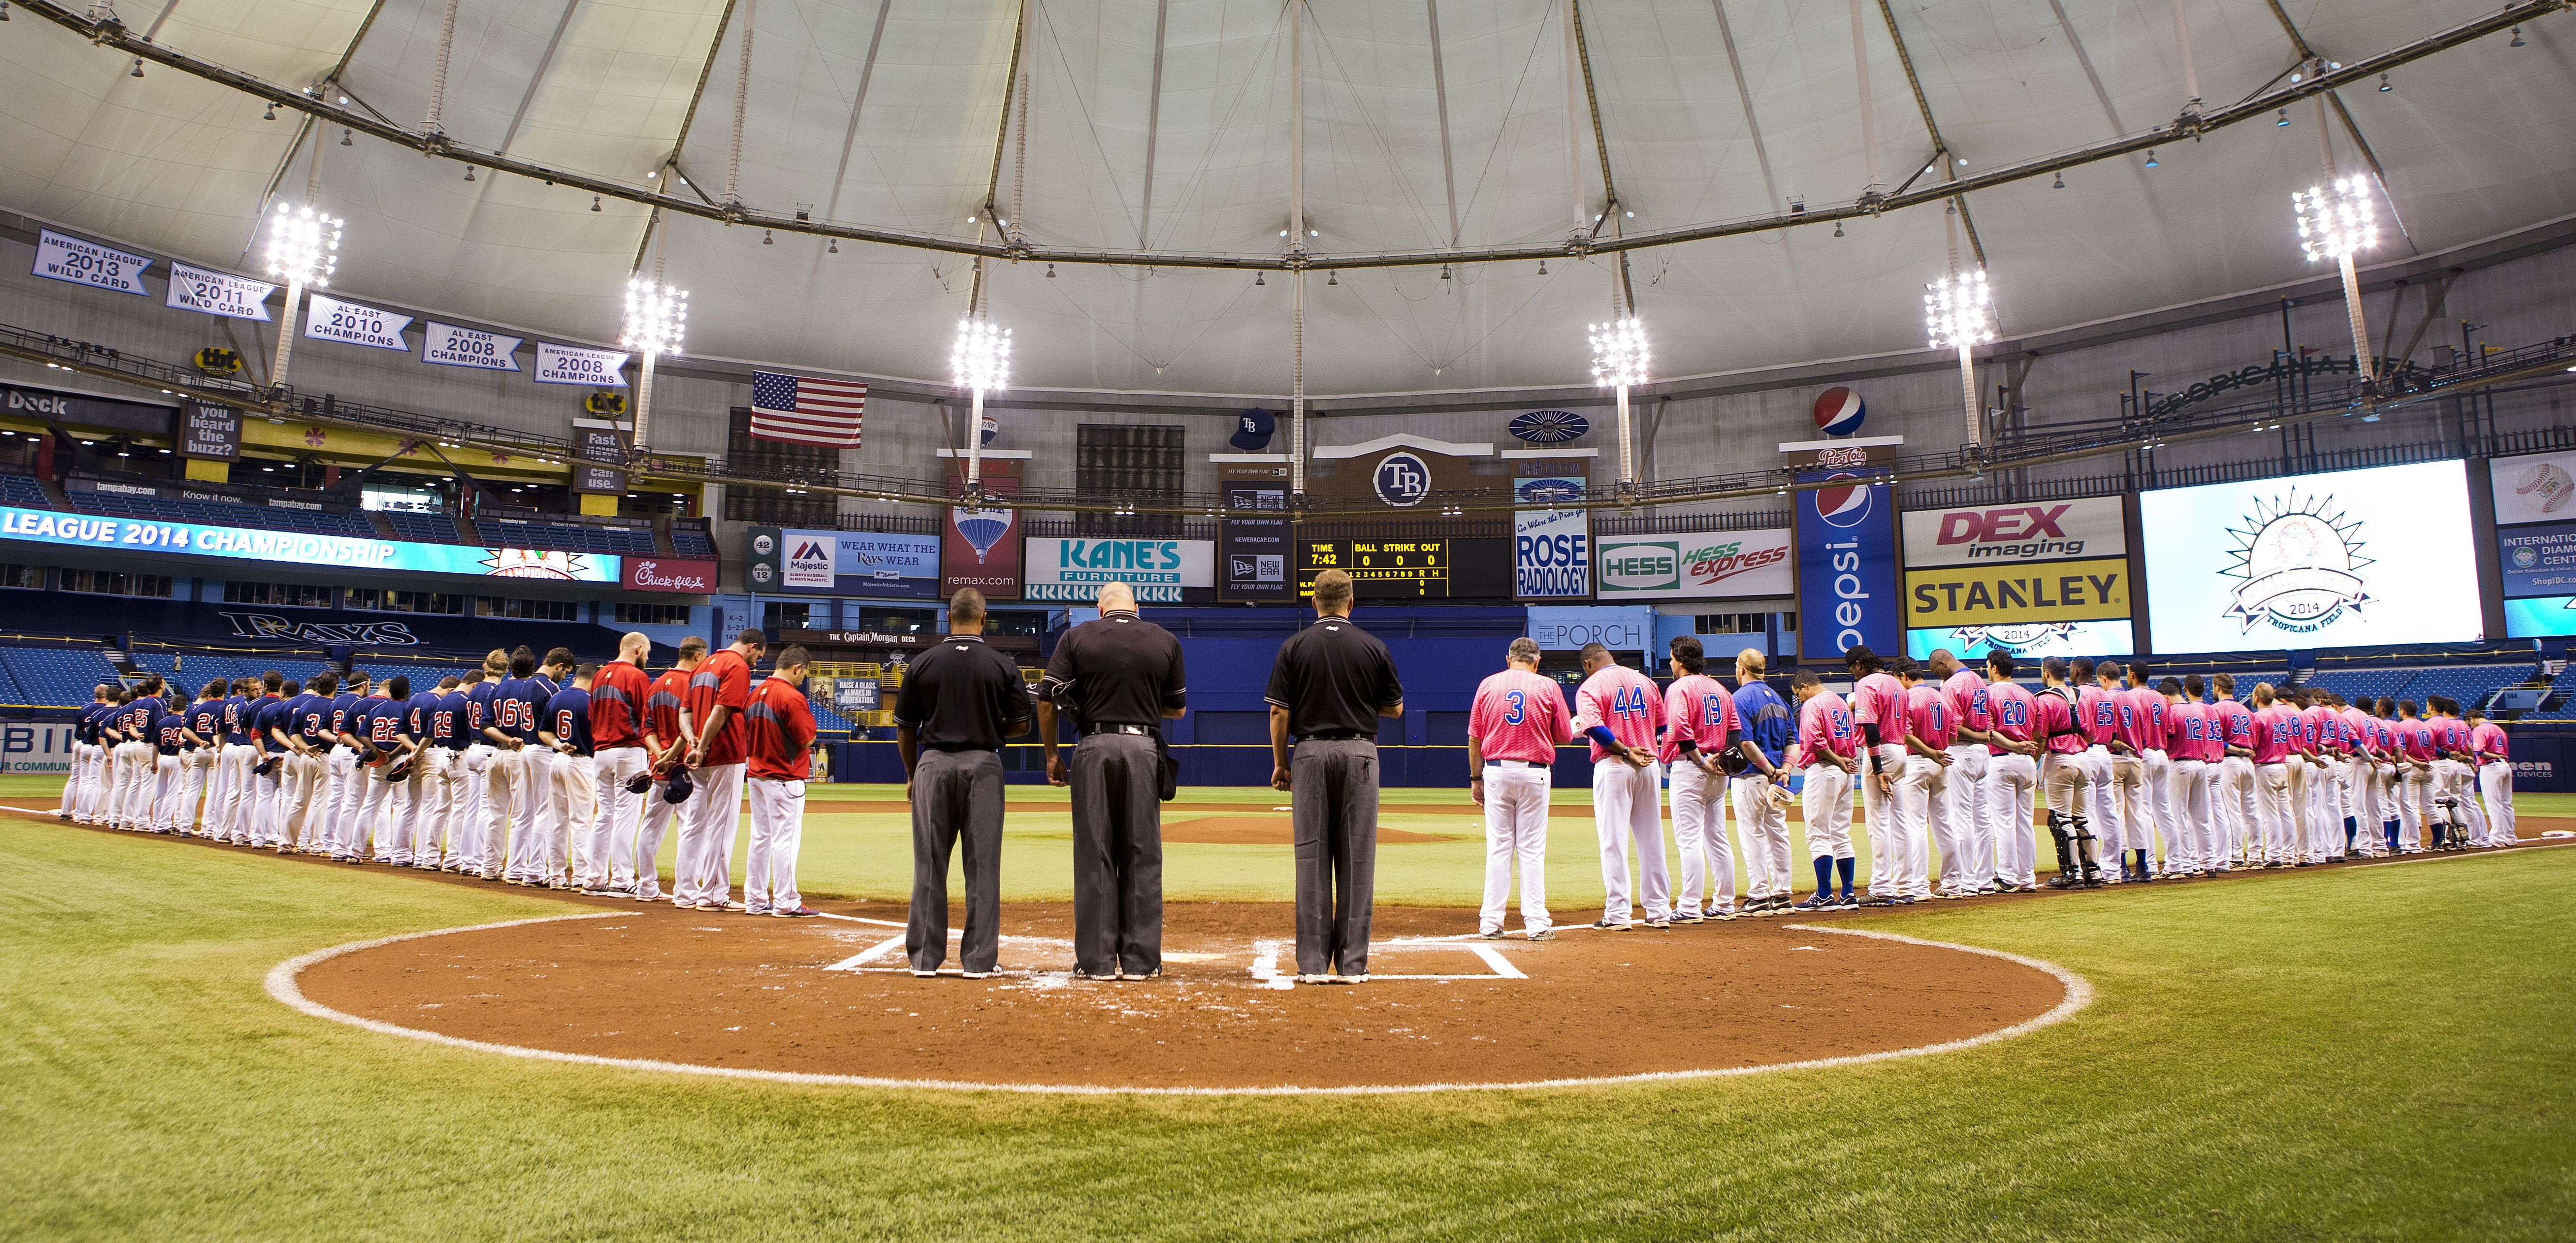 2014 Championship Game Tropicana Field Home Of The Tampa Bay Rays Winter Park 6 Sanford 3 Tampa Bay Rays Championship Game Tampa Bay